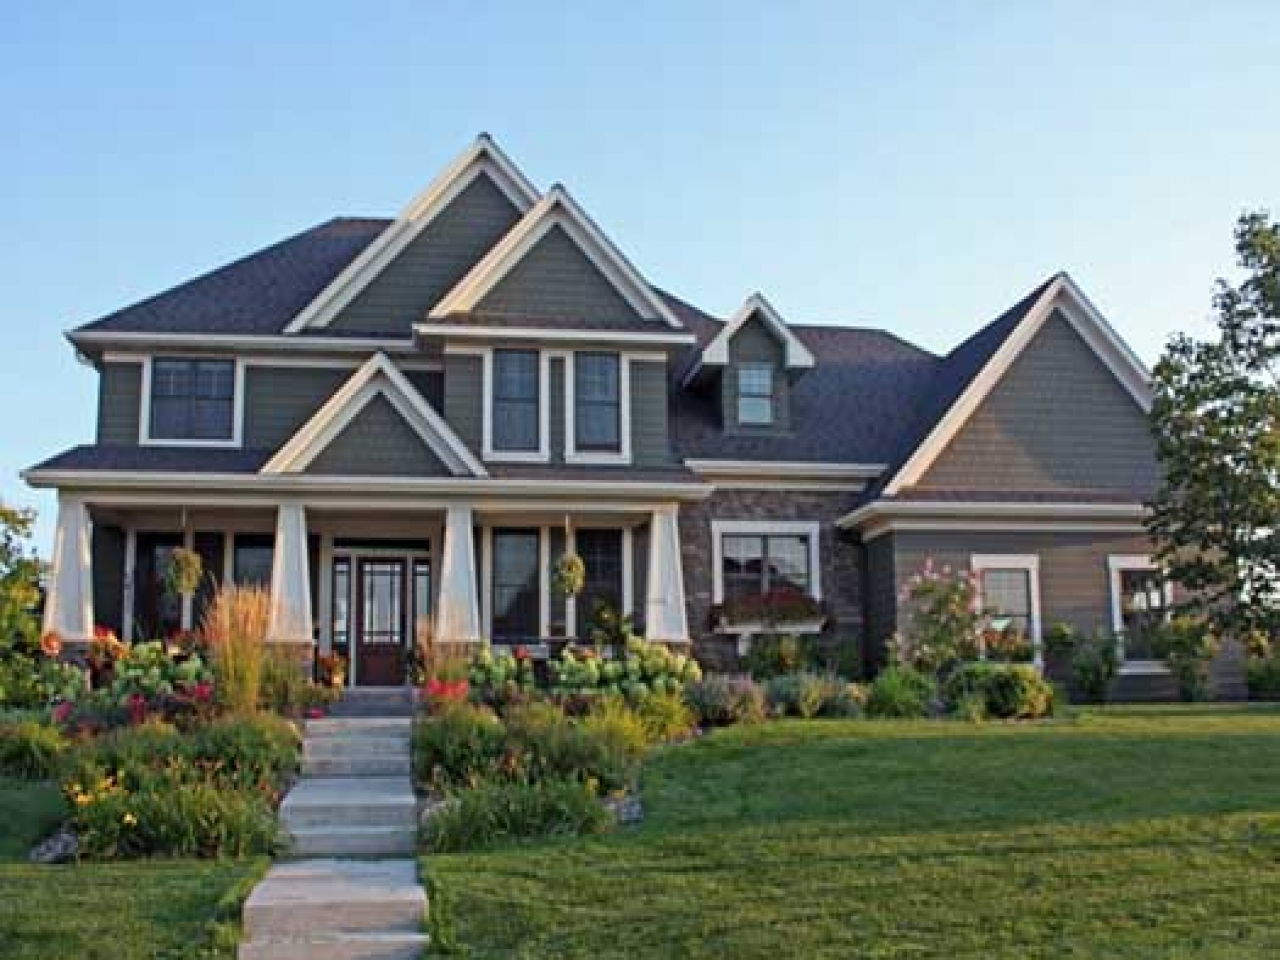 2 story craftsman style house plans craftsman style with for Affordable craftsman house plans